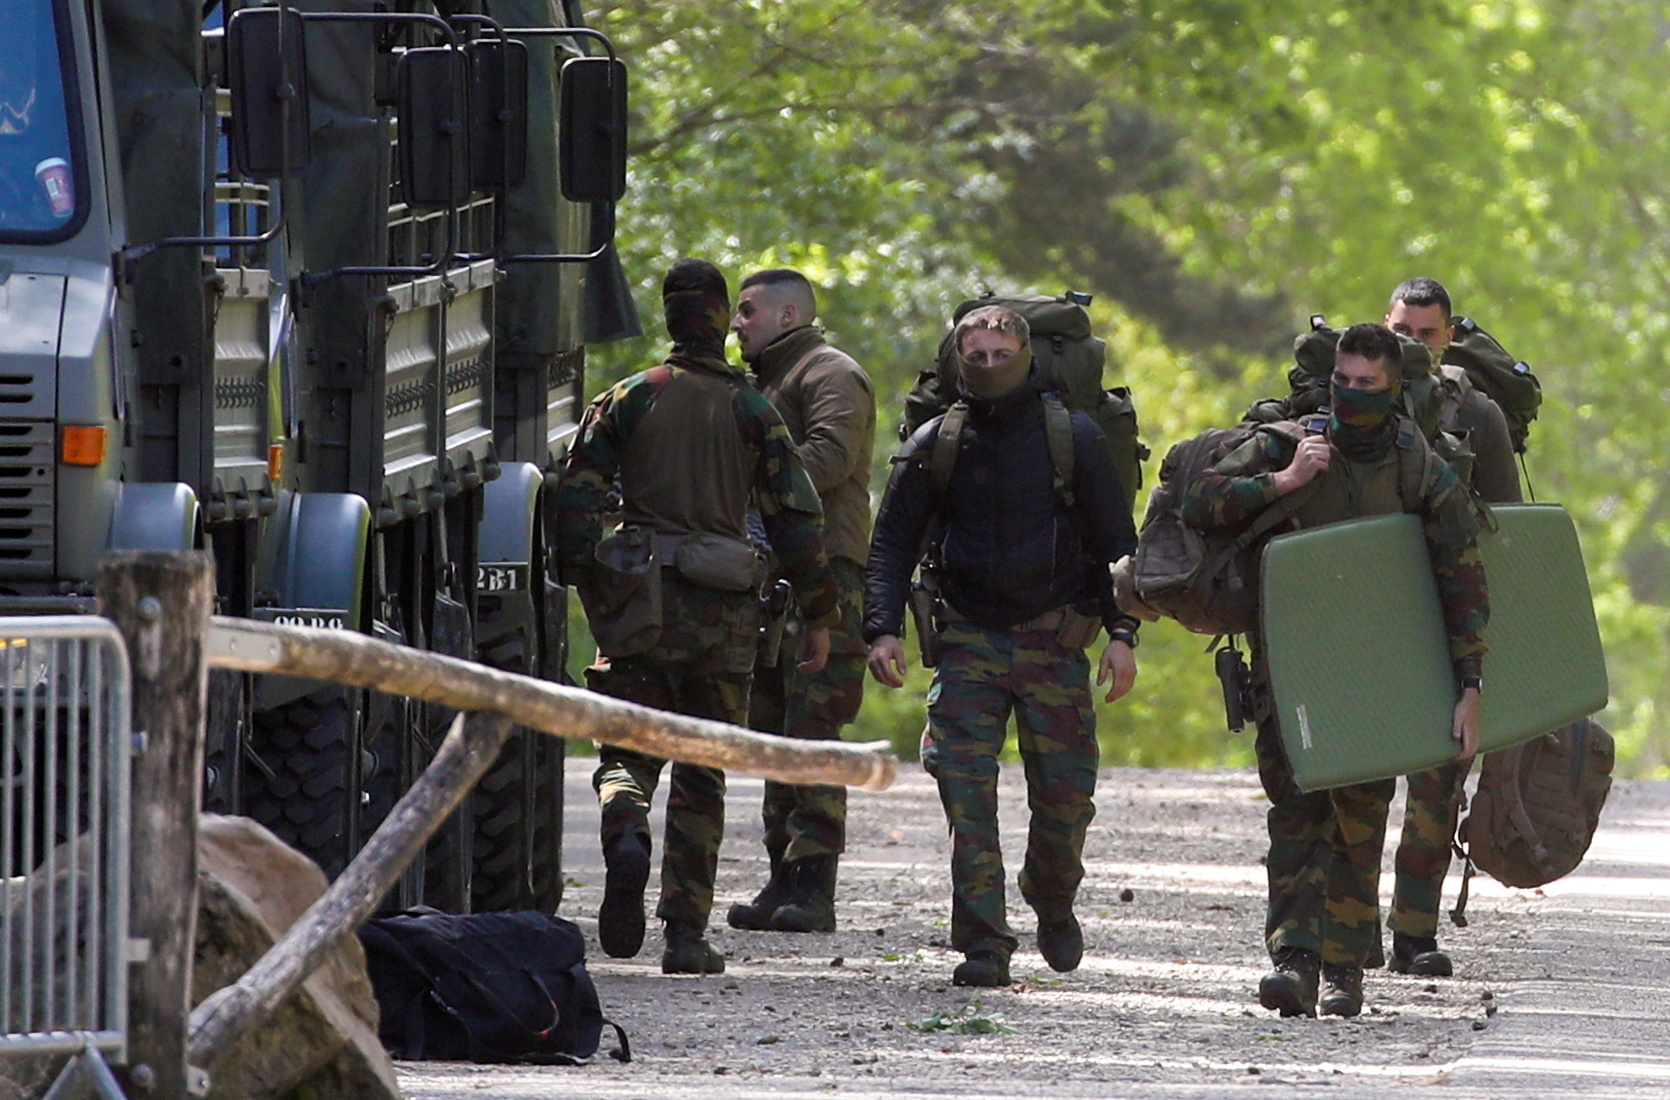 Belgian army members carry their bags at National Park Hoge Kempen while scouring to capture Belgian Jurgen Conings, a soldier who disappeared after threatening a virologist supportive of coronavirus disease (COVID-19) vaccines and coronavirus restrictions, in Maasmechelen, Belgium May 21, 2021. REUTERS/Yves Herman